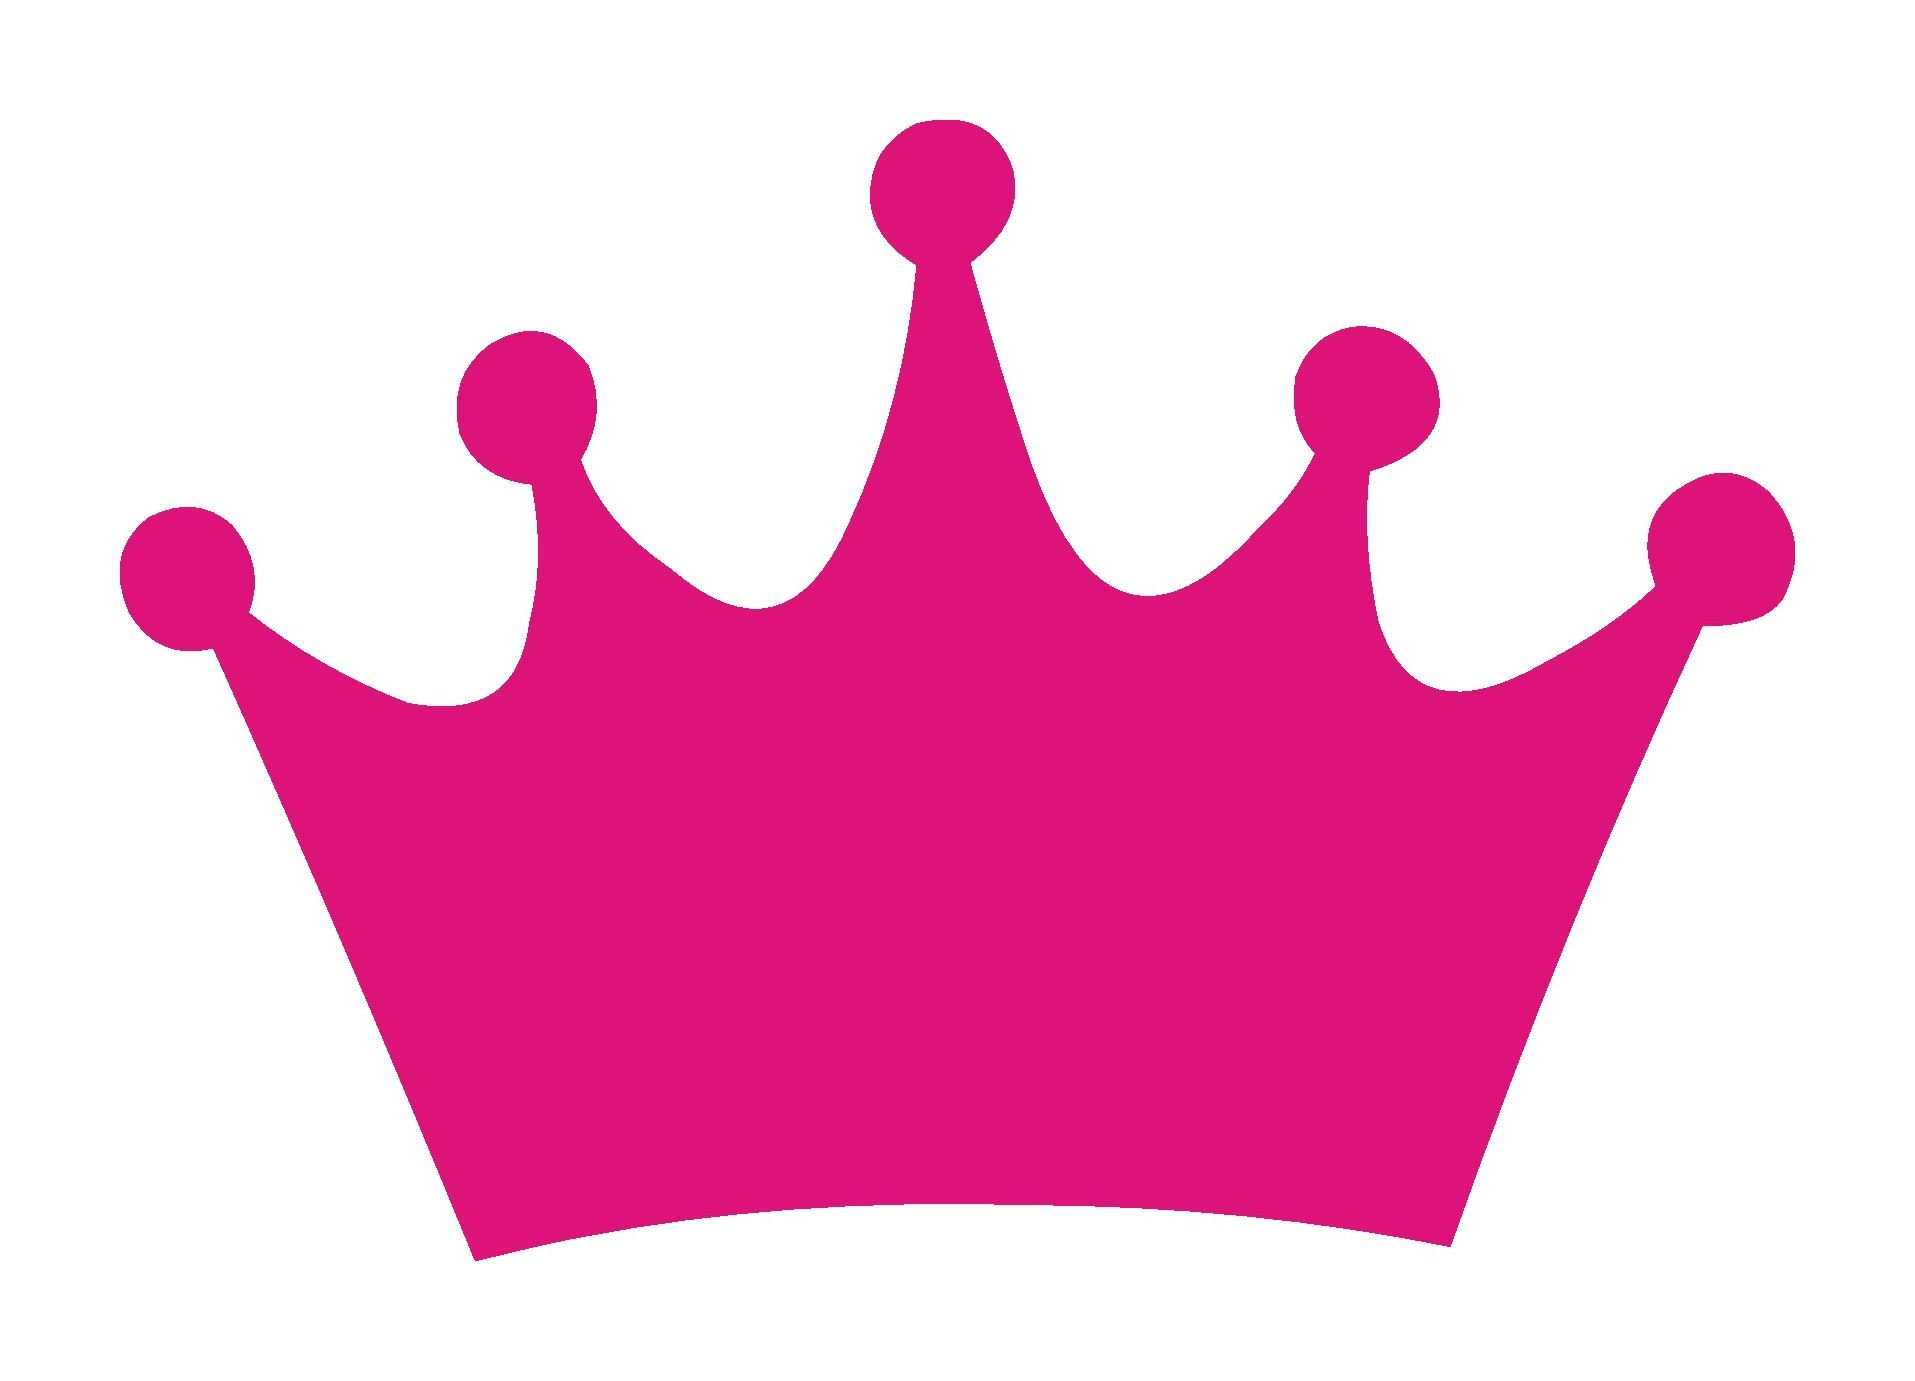 this is best princess crown clipart 15777 princess crown png rh pinterest com princess crown clipart free download princess crown clipart free download